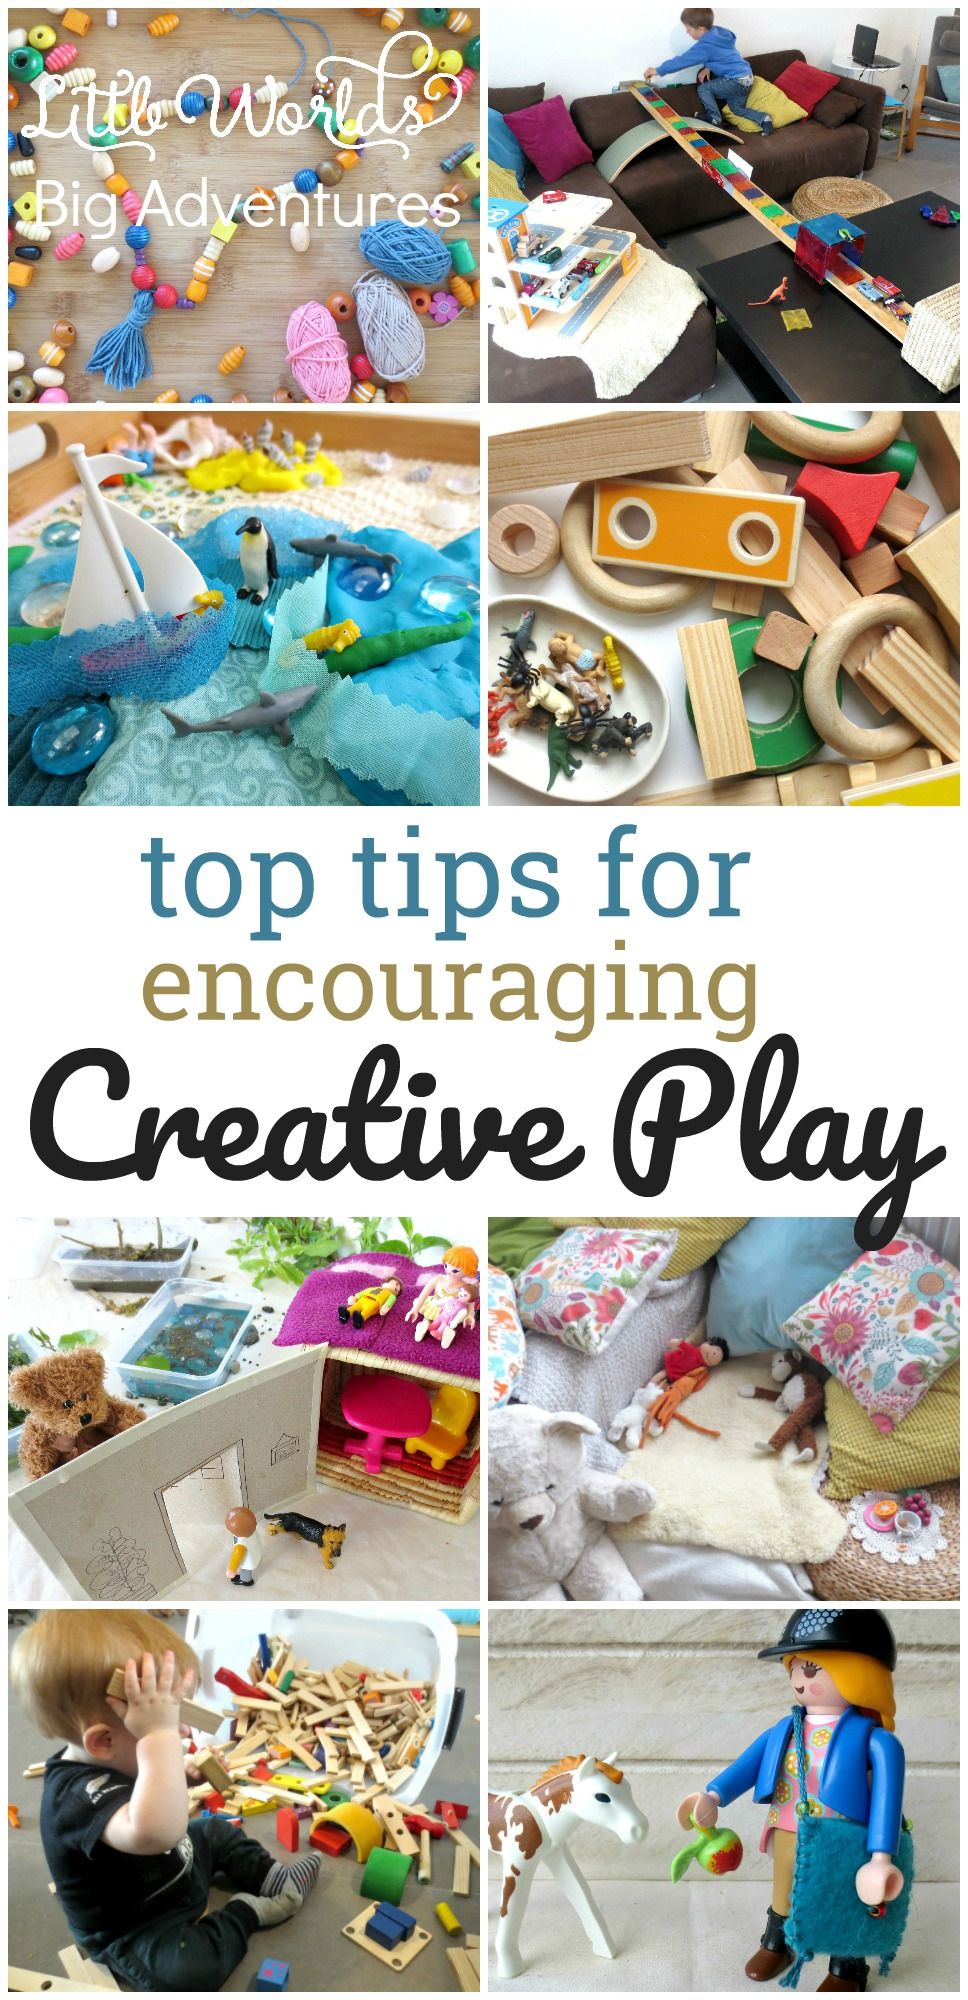 Top Tops for Encouraging Creative Play in Young Children | Little Worlds Big Adventures #creativity  #parenting #imagination #childhoodunplugged #playmatters #freeplay #play